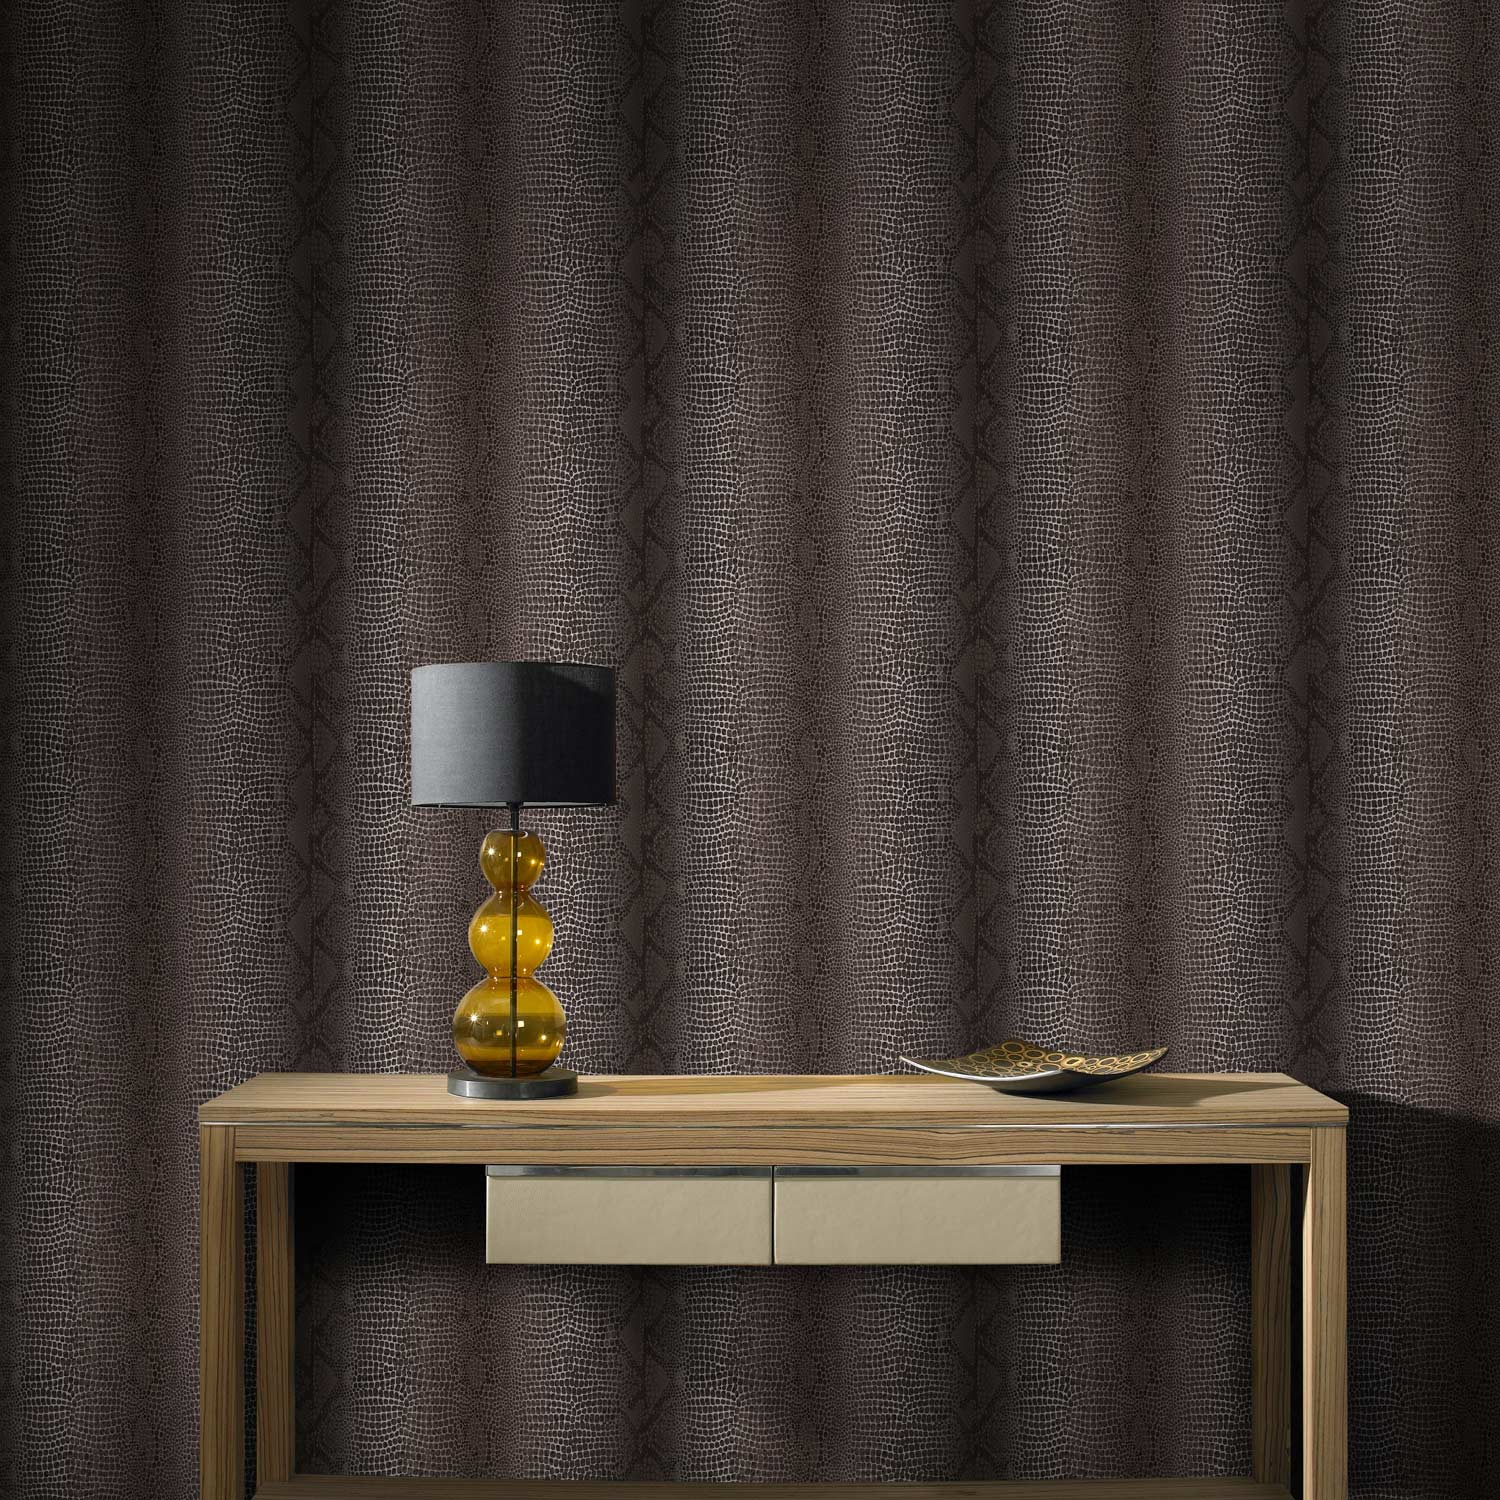 papier peint vinyle sur intiss python marron leroy merlin. Black Bedroom Furniture Sets. Home Design Ideas